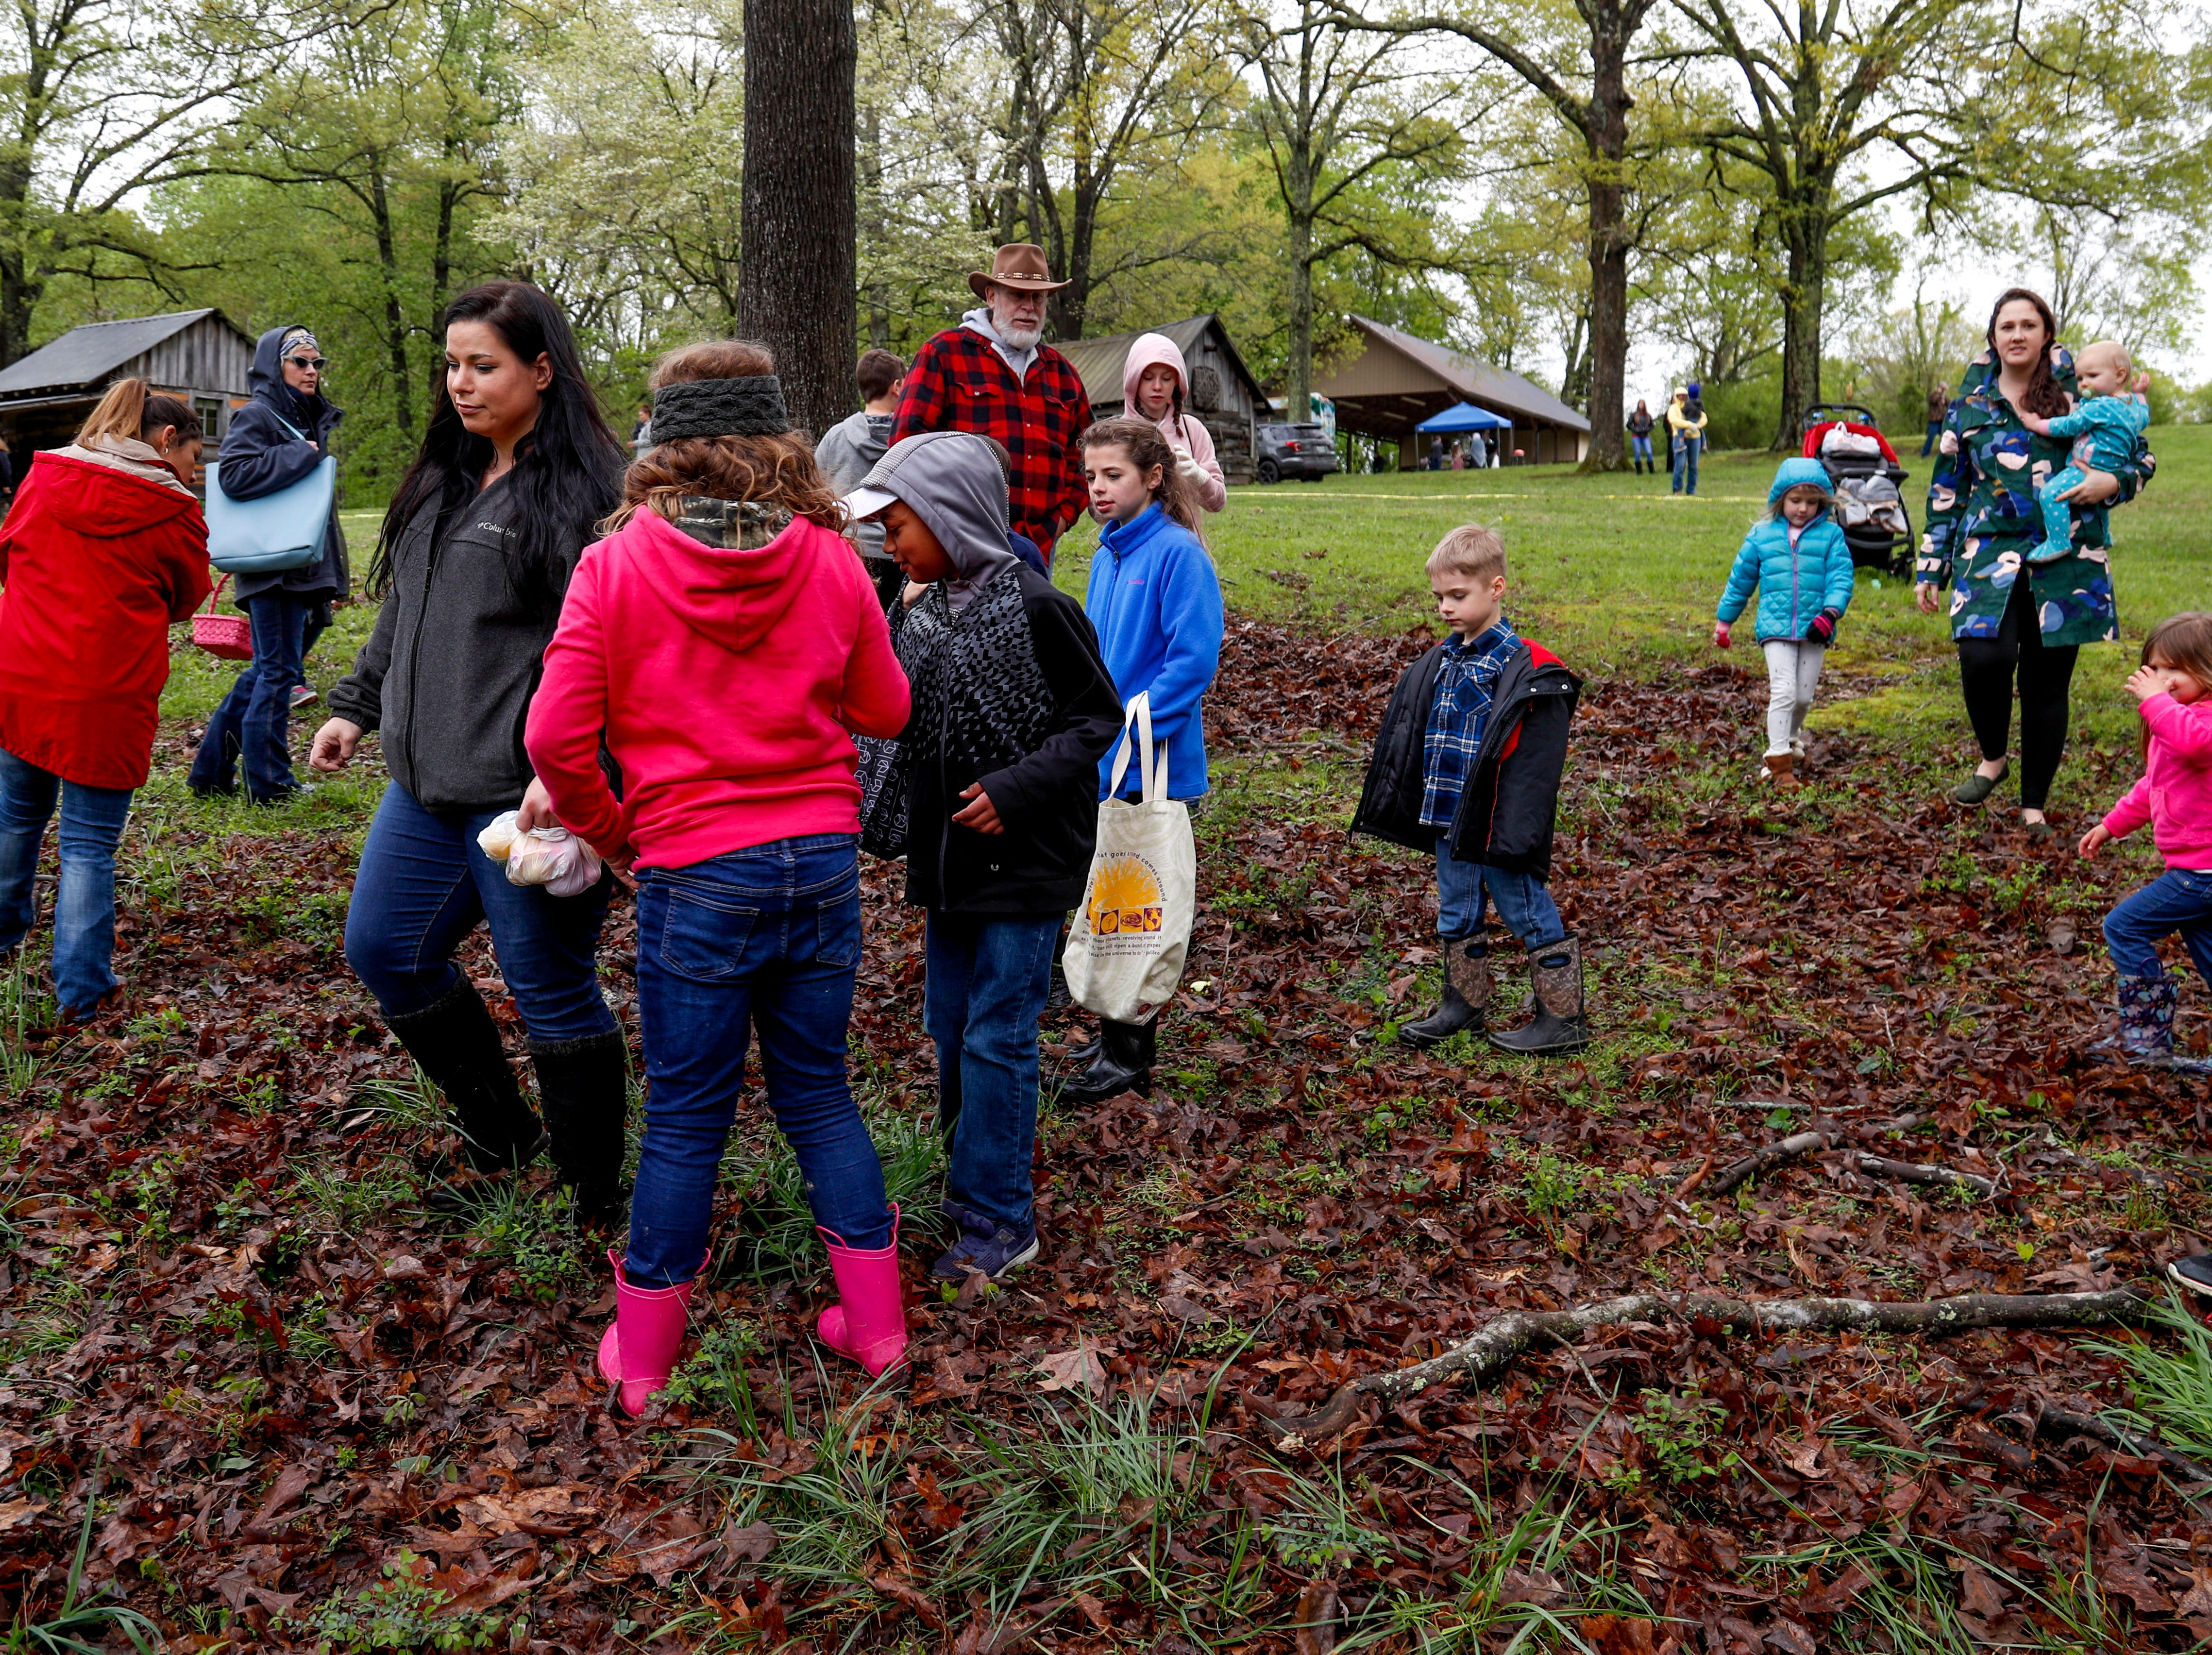 Participants gather in a central area of the egg hunting region to search for the still unfound golden egg at the annual Easter egg hunts at Historic Collinsville in Clarksville, Tenn., on Saturday, April 20, 2019.